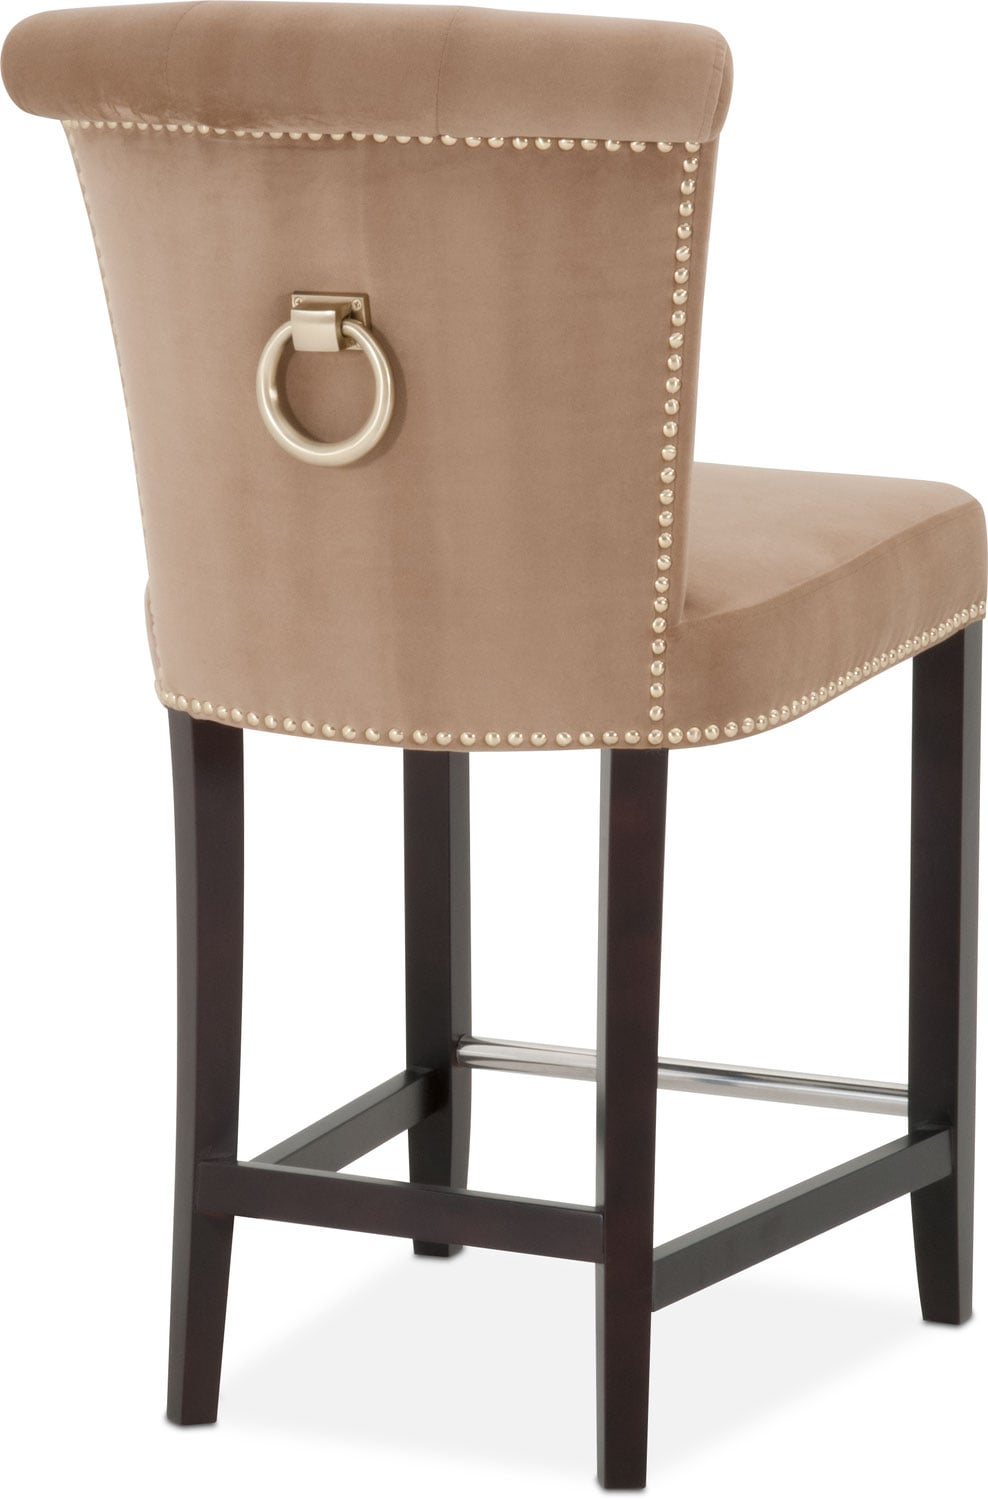 Calloway Counter Height Stool Camel Gold Value City